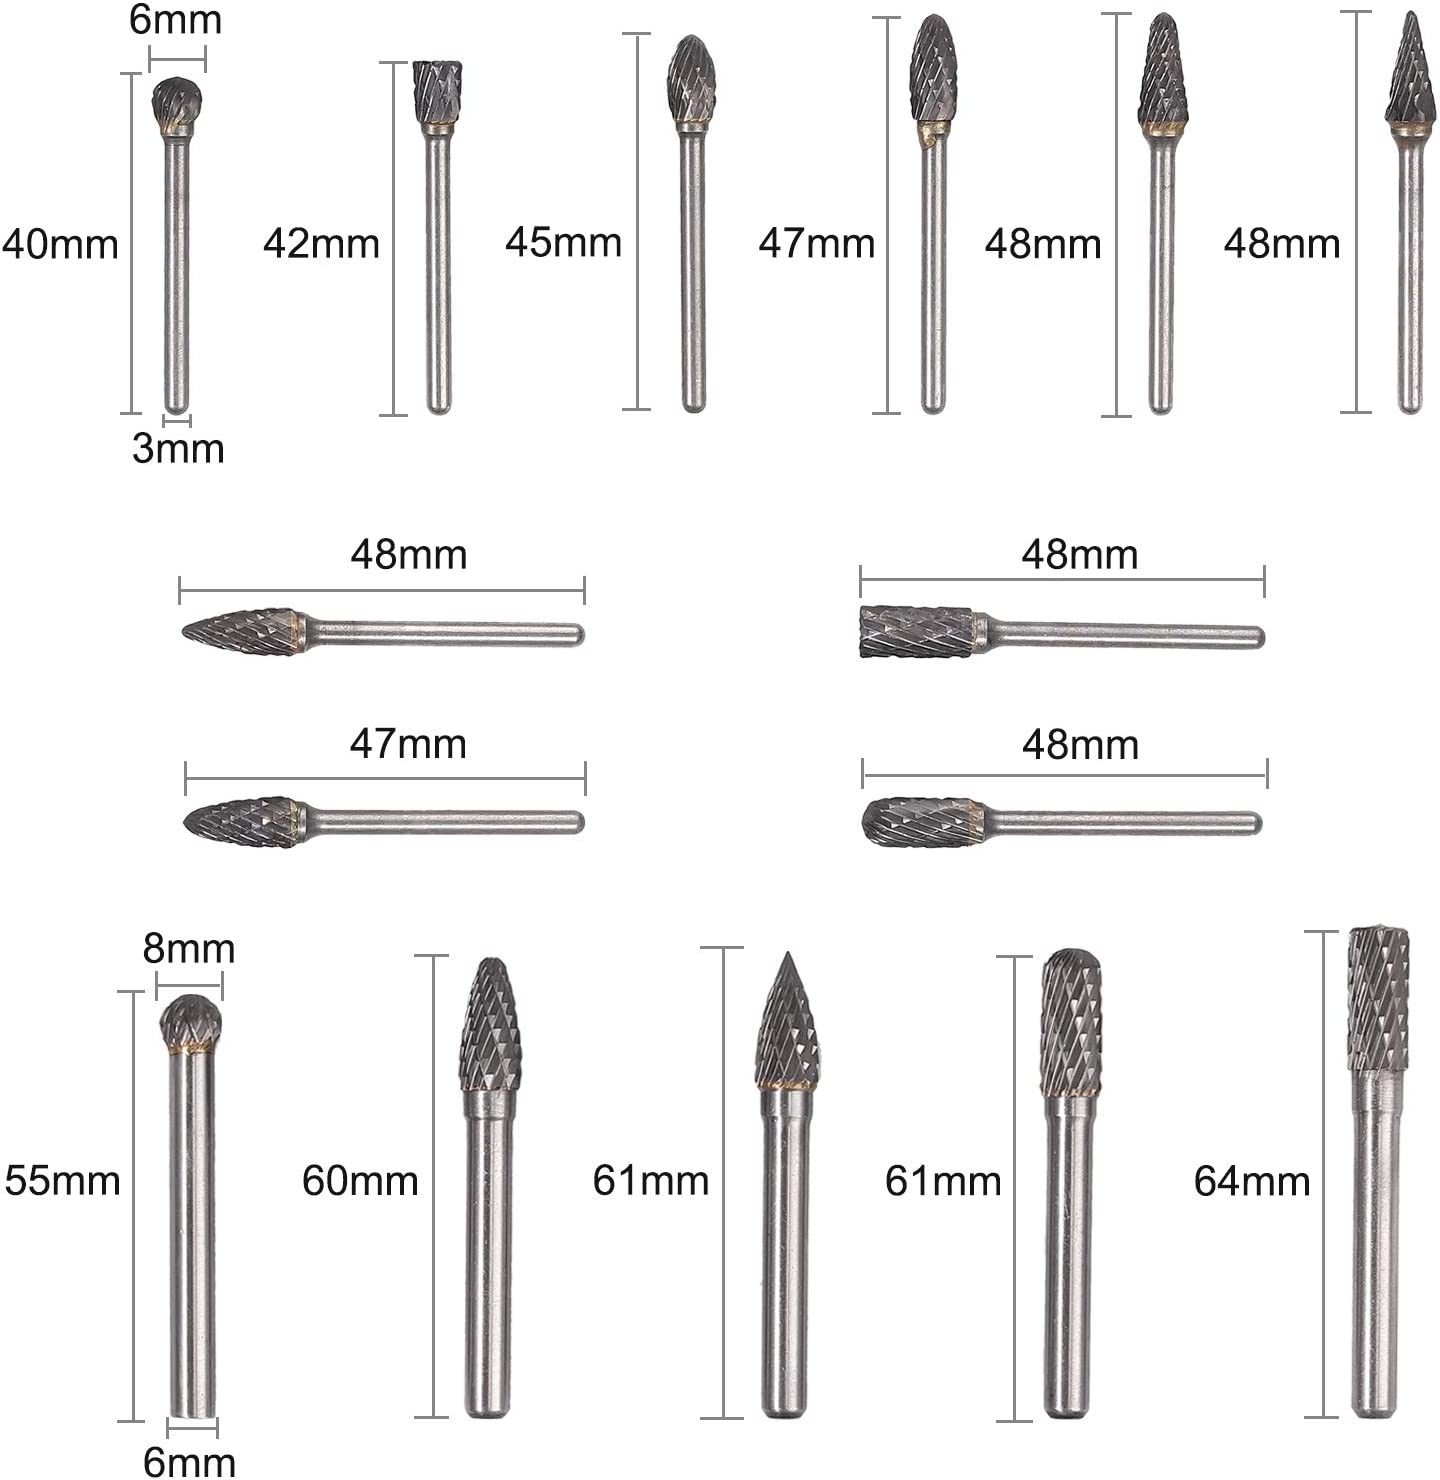 Kamtop Carbide Drill Bits15 PCS Tungsten Carbide Burr Set Double-cut Rotary Burr Kit 6mm 8mm for Rotating Tools